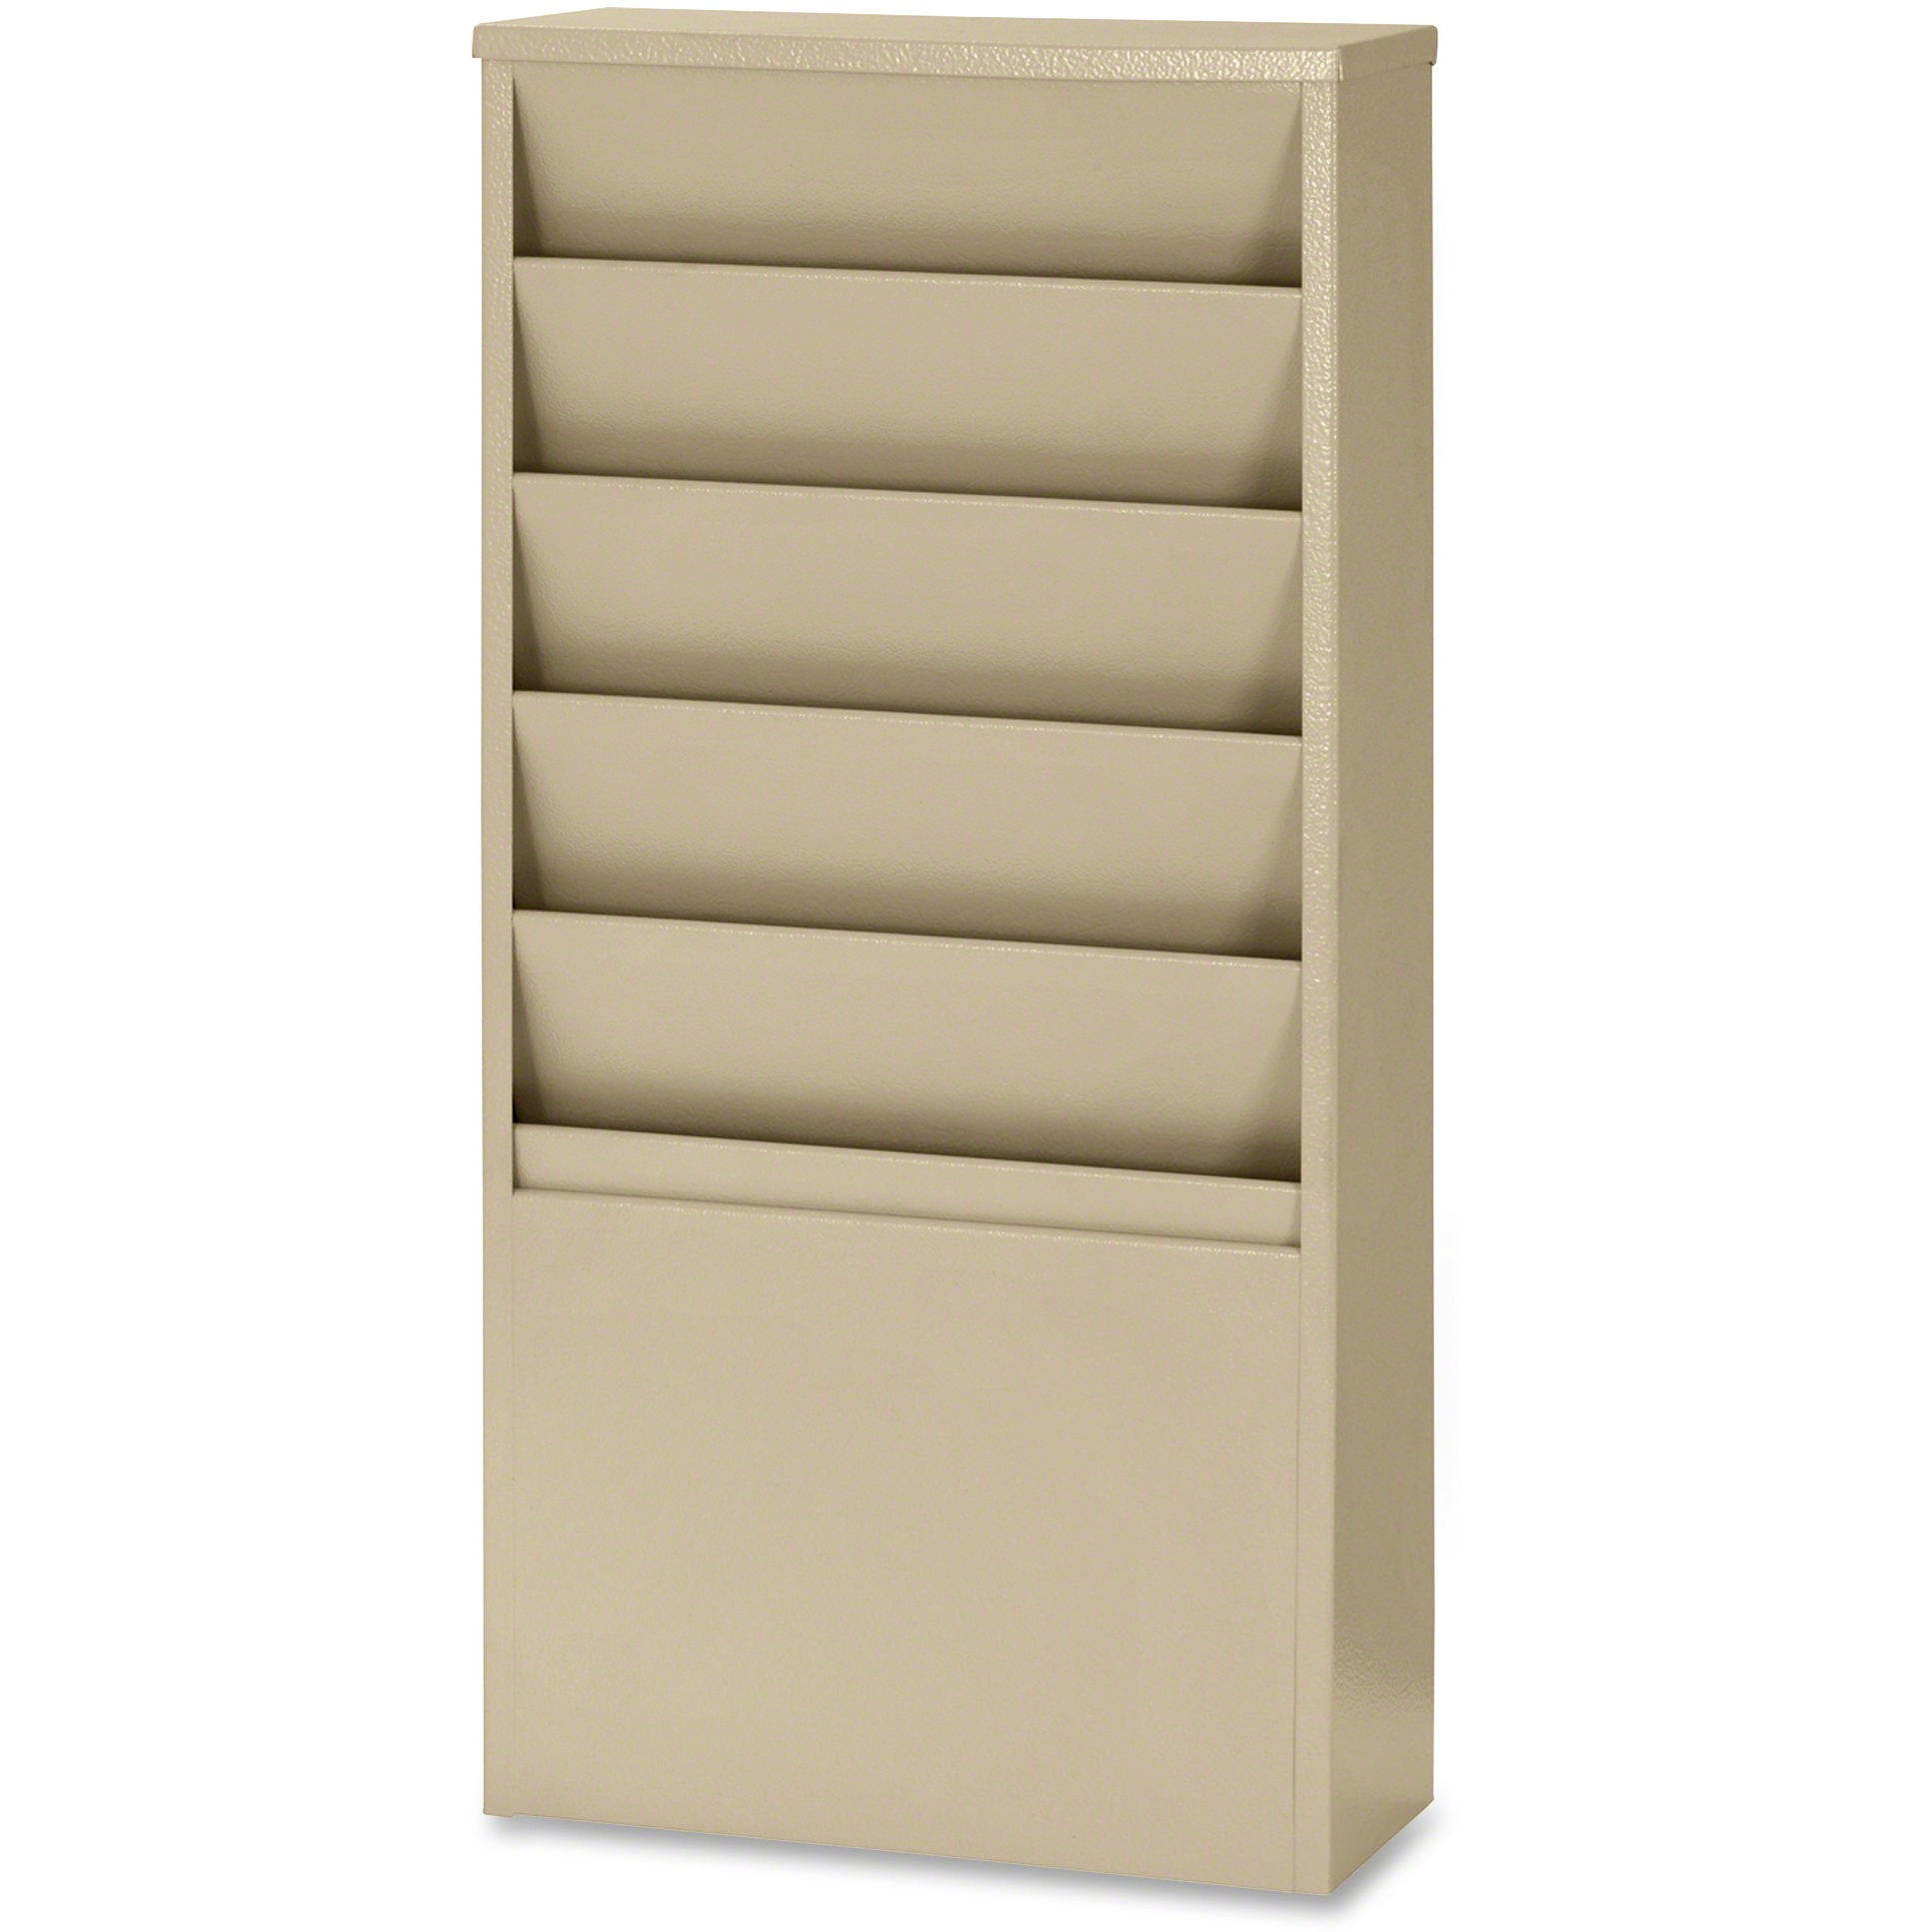 5-Pocket Literature Display Racks